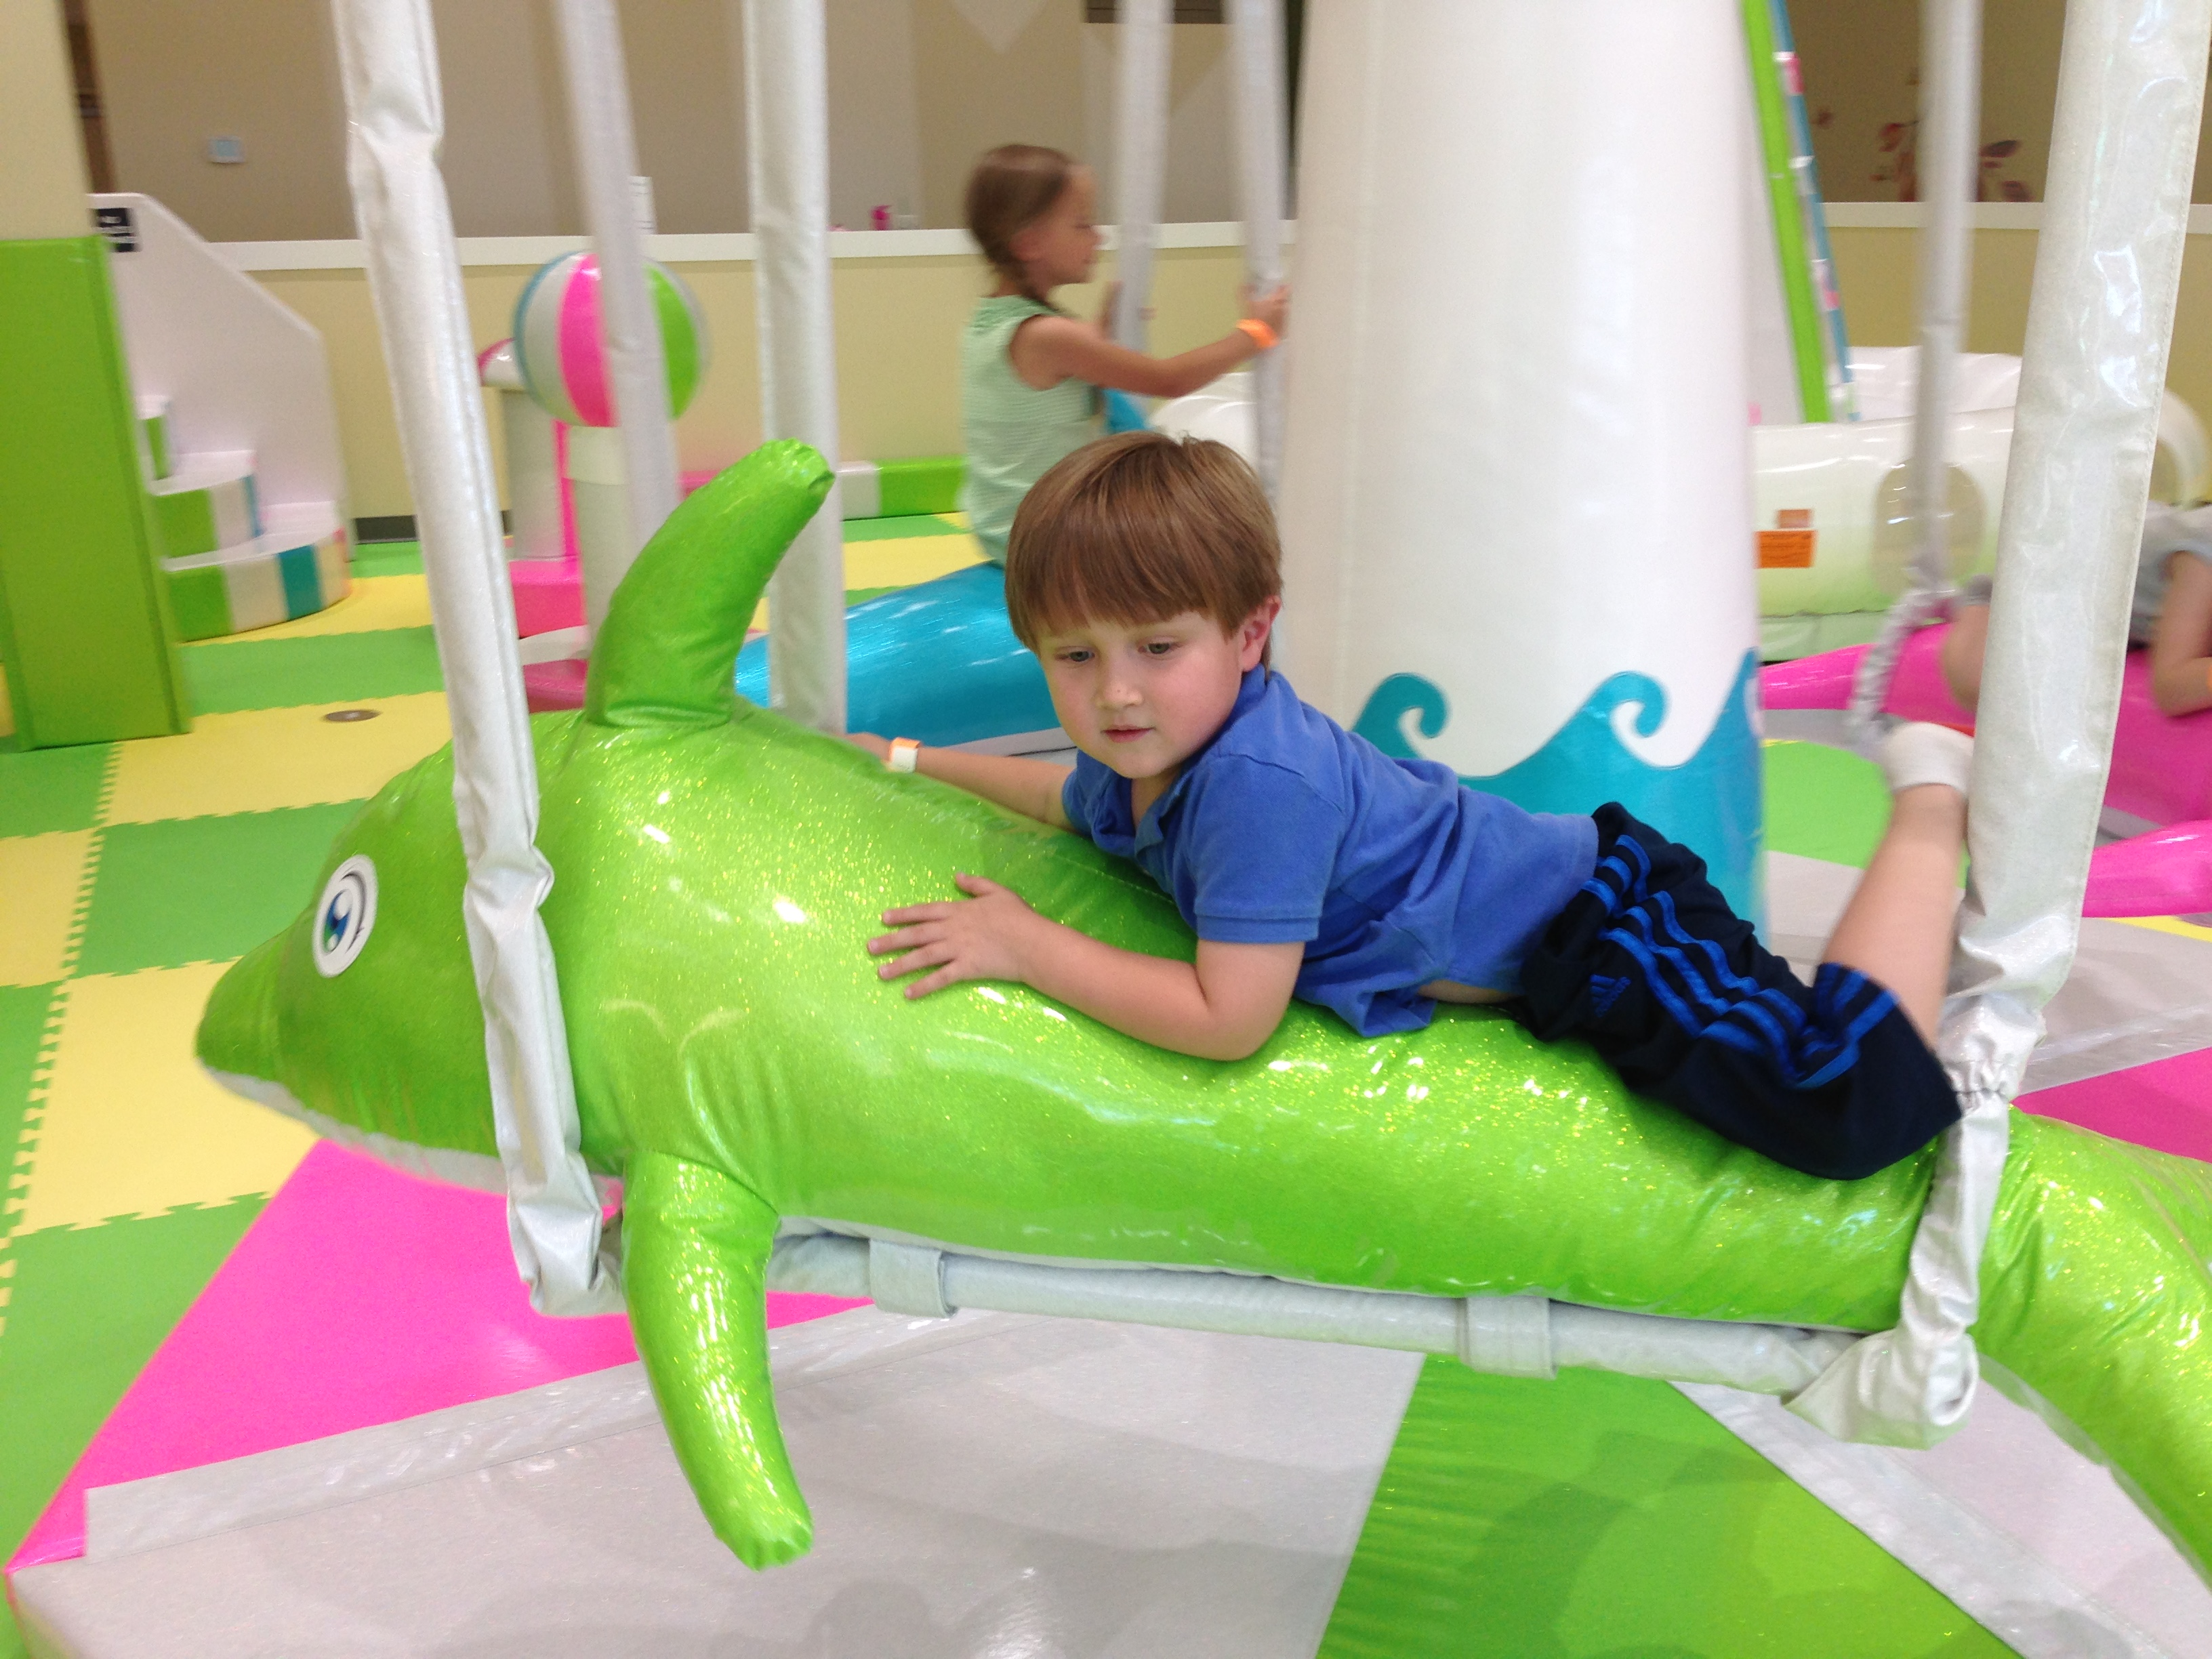 Dolphin merry-go-round at Giggle Jungle